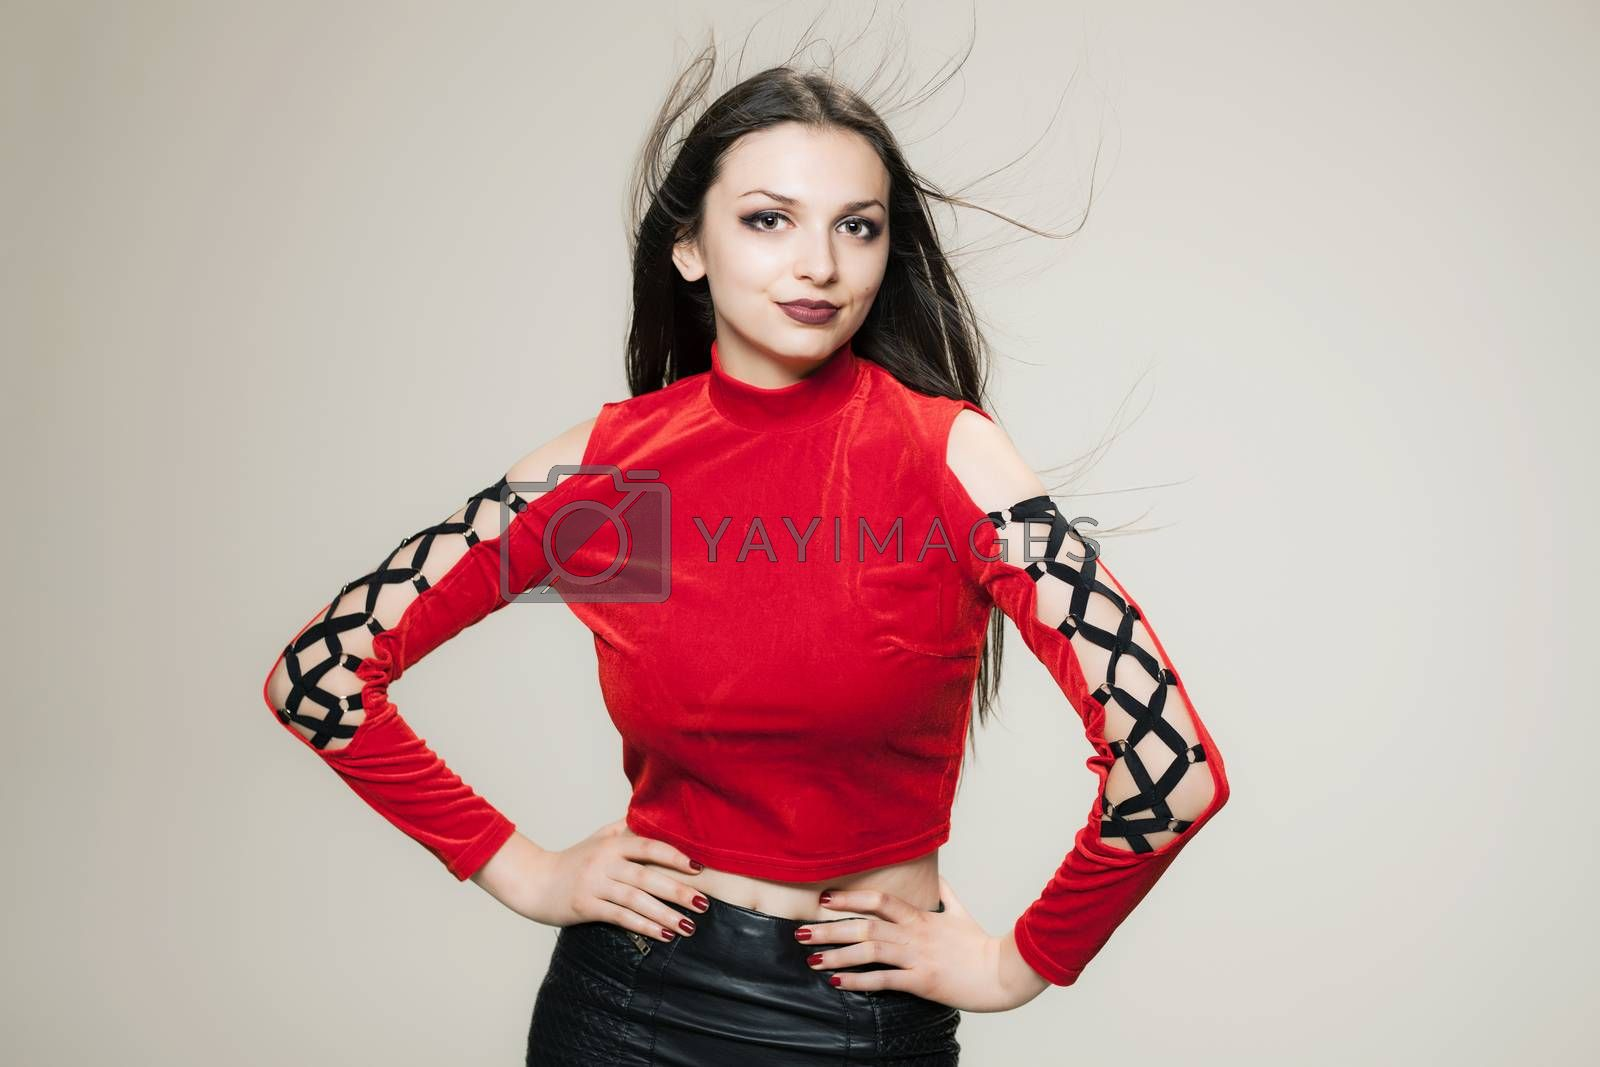 gothic style girl in red shirt, with windy hair